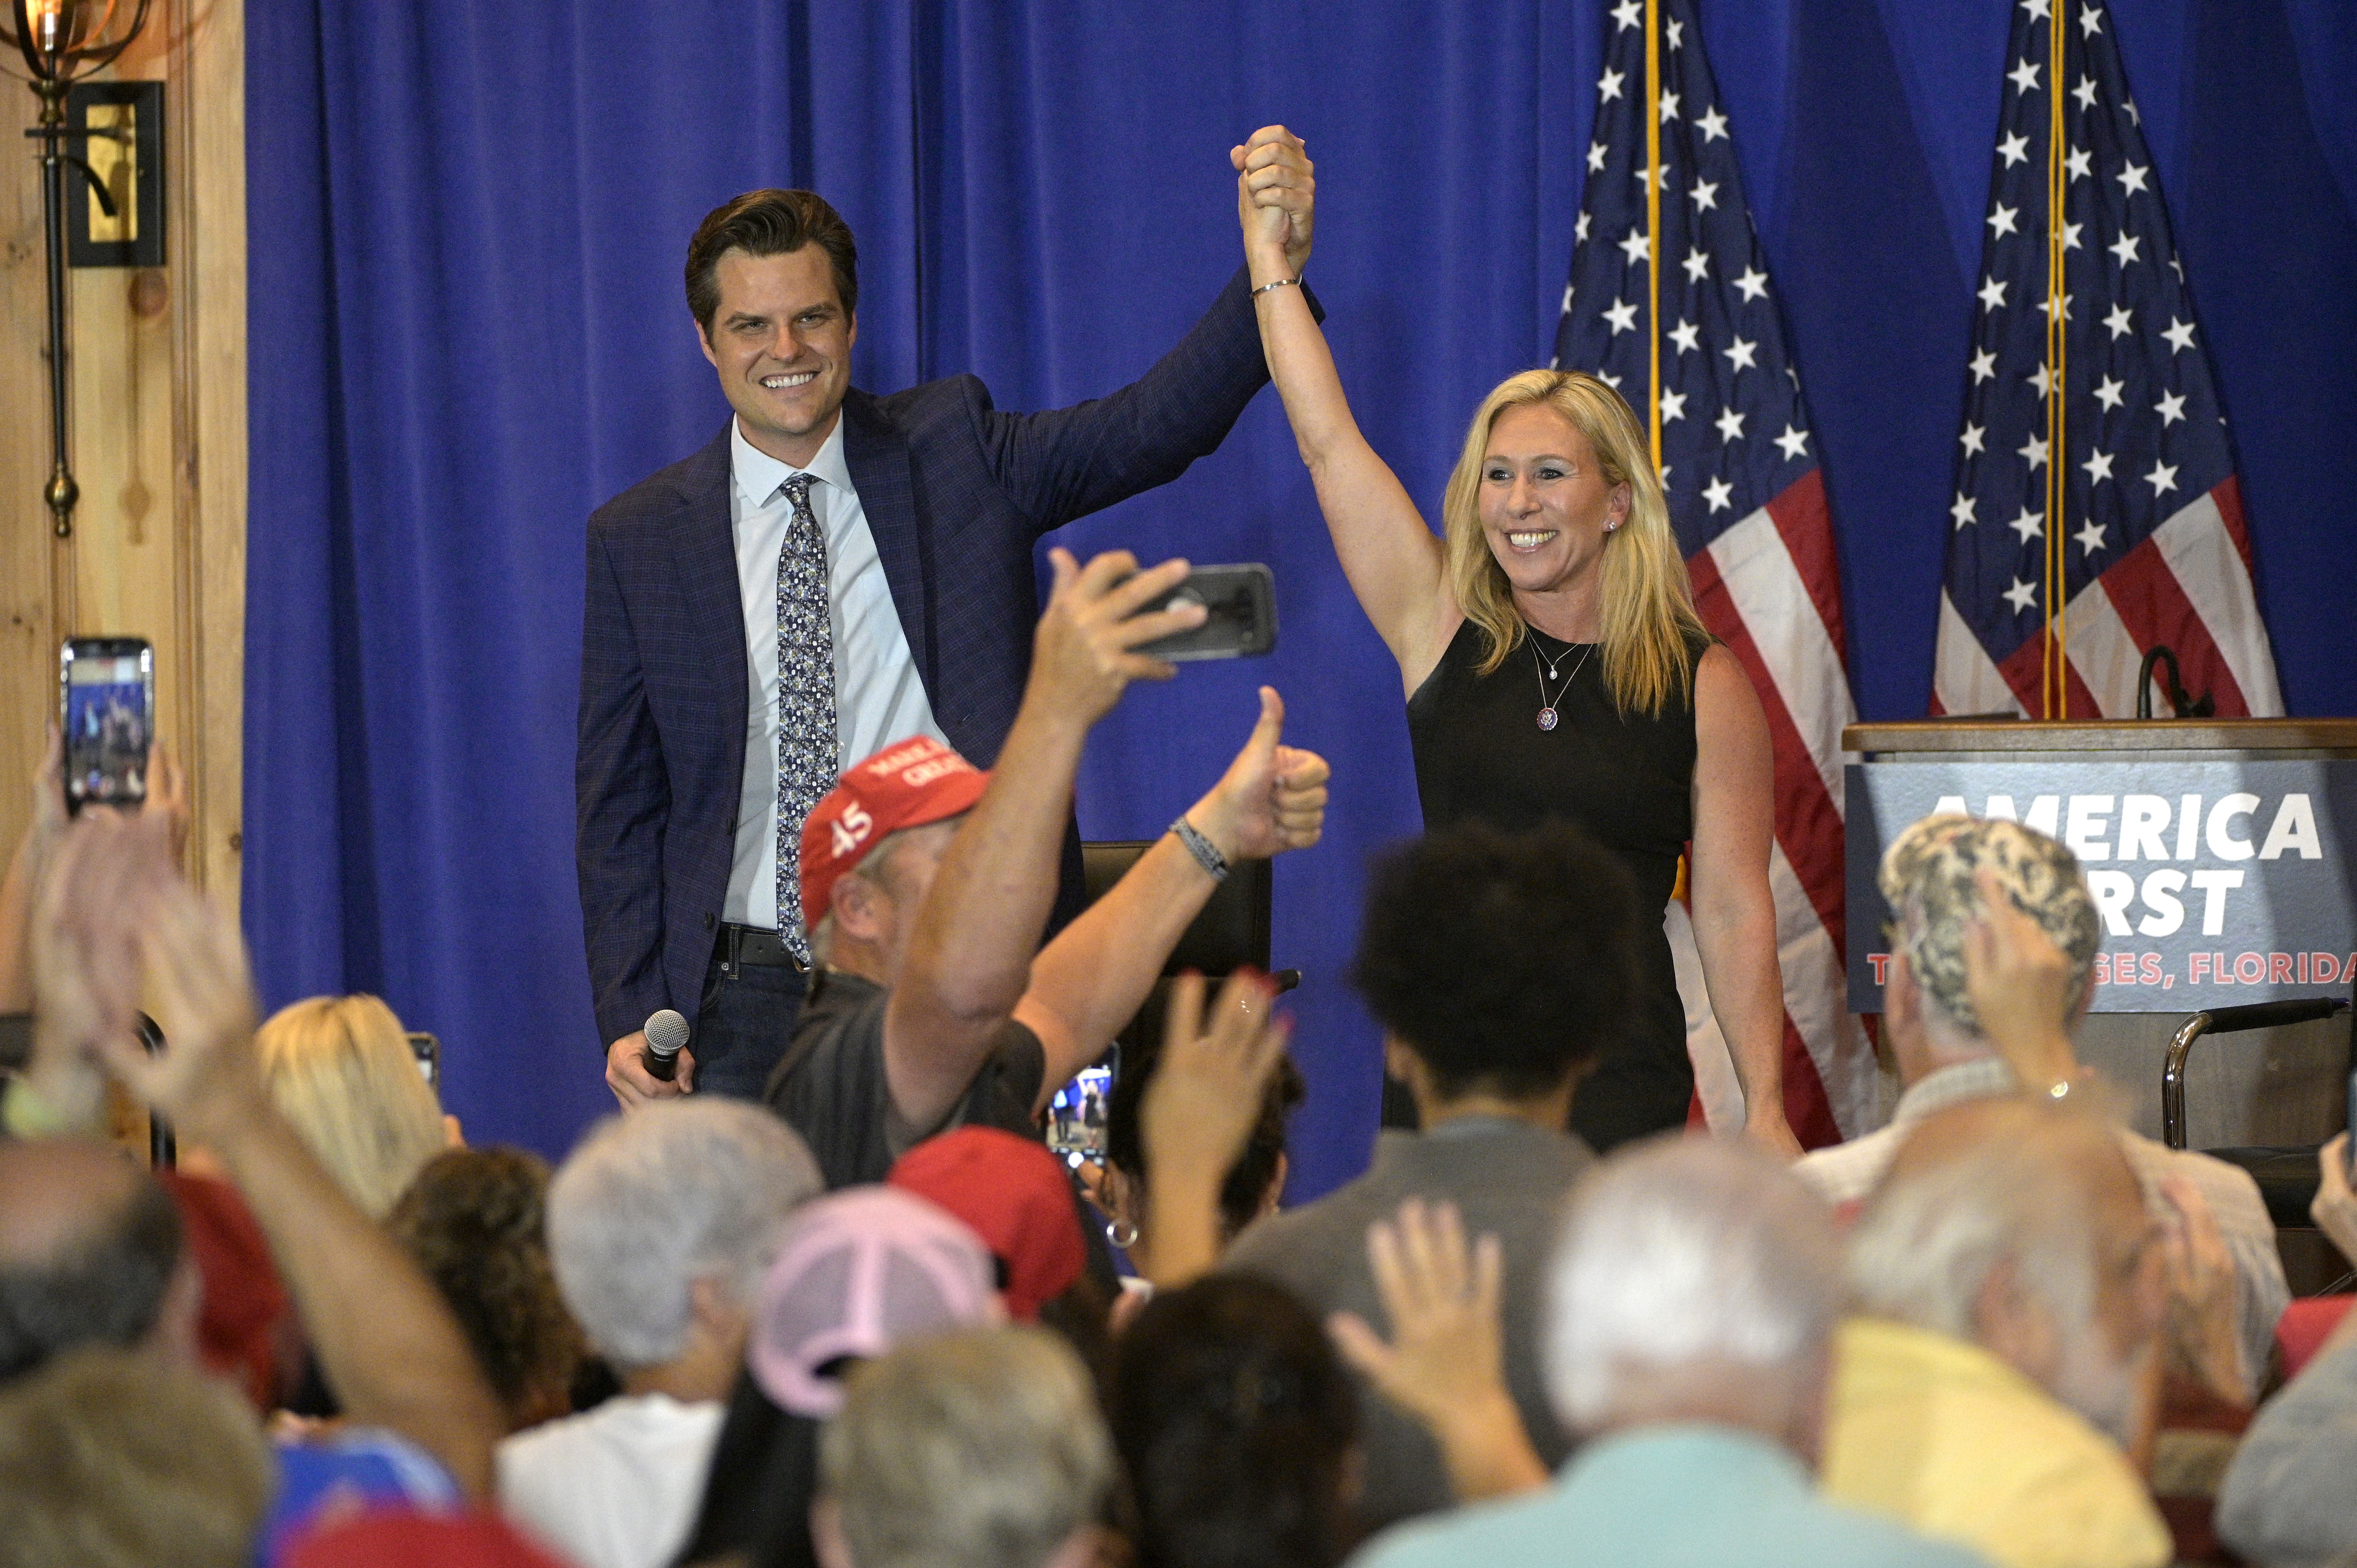 Rep. Matt Gaetz, R-Fla., left, and Rep. Marjorie Taylor Greene, R-Ga., raise their arms after addressing attendees of a rally in The Villages, Fla., on May 7, 2021,